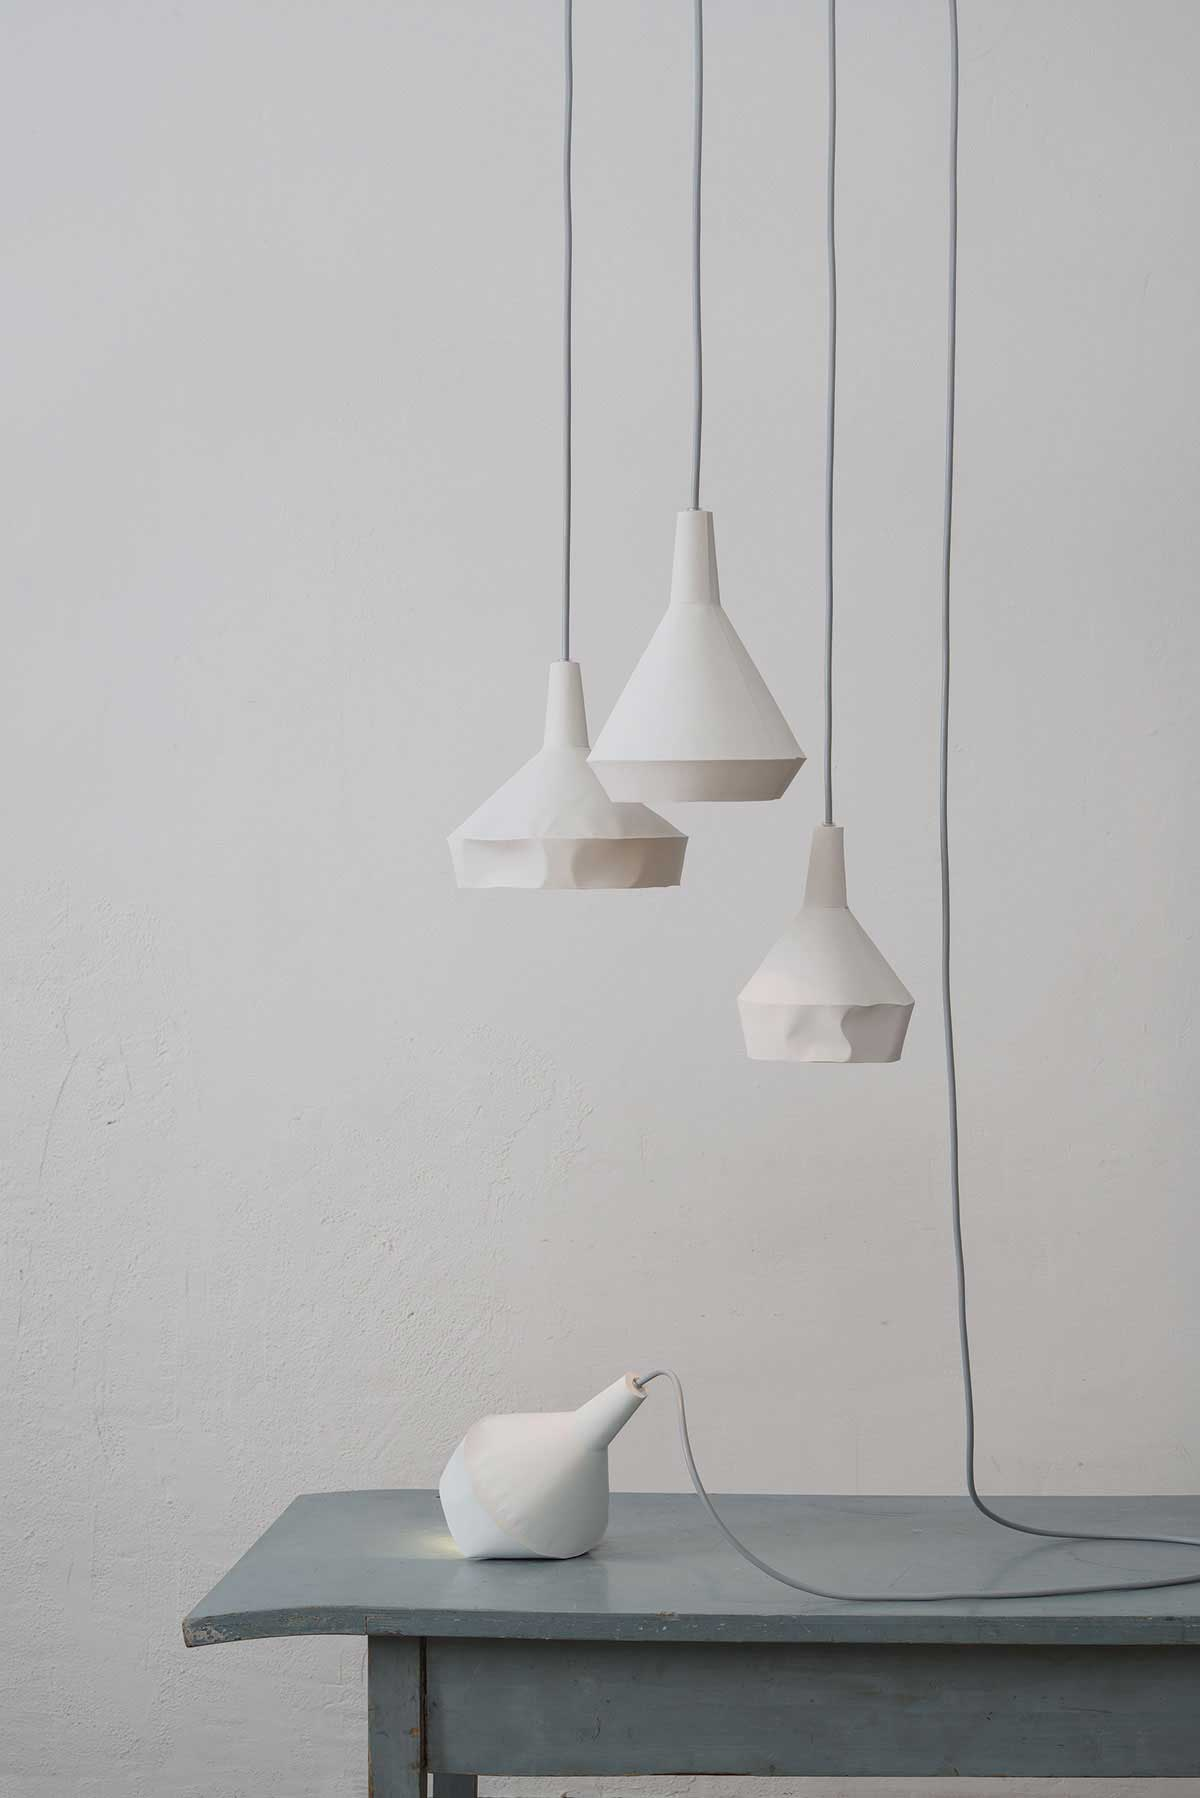 Product Design & Lighting by Aust & Amelung.